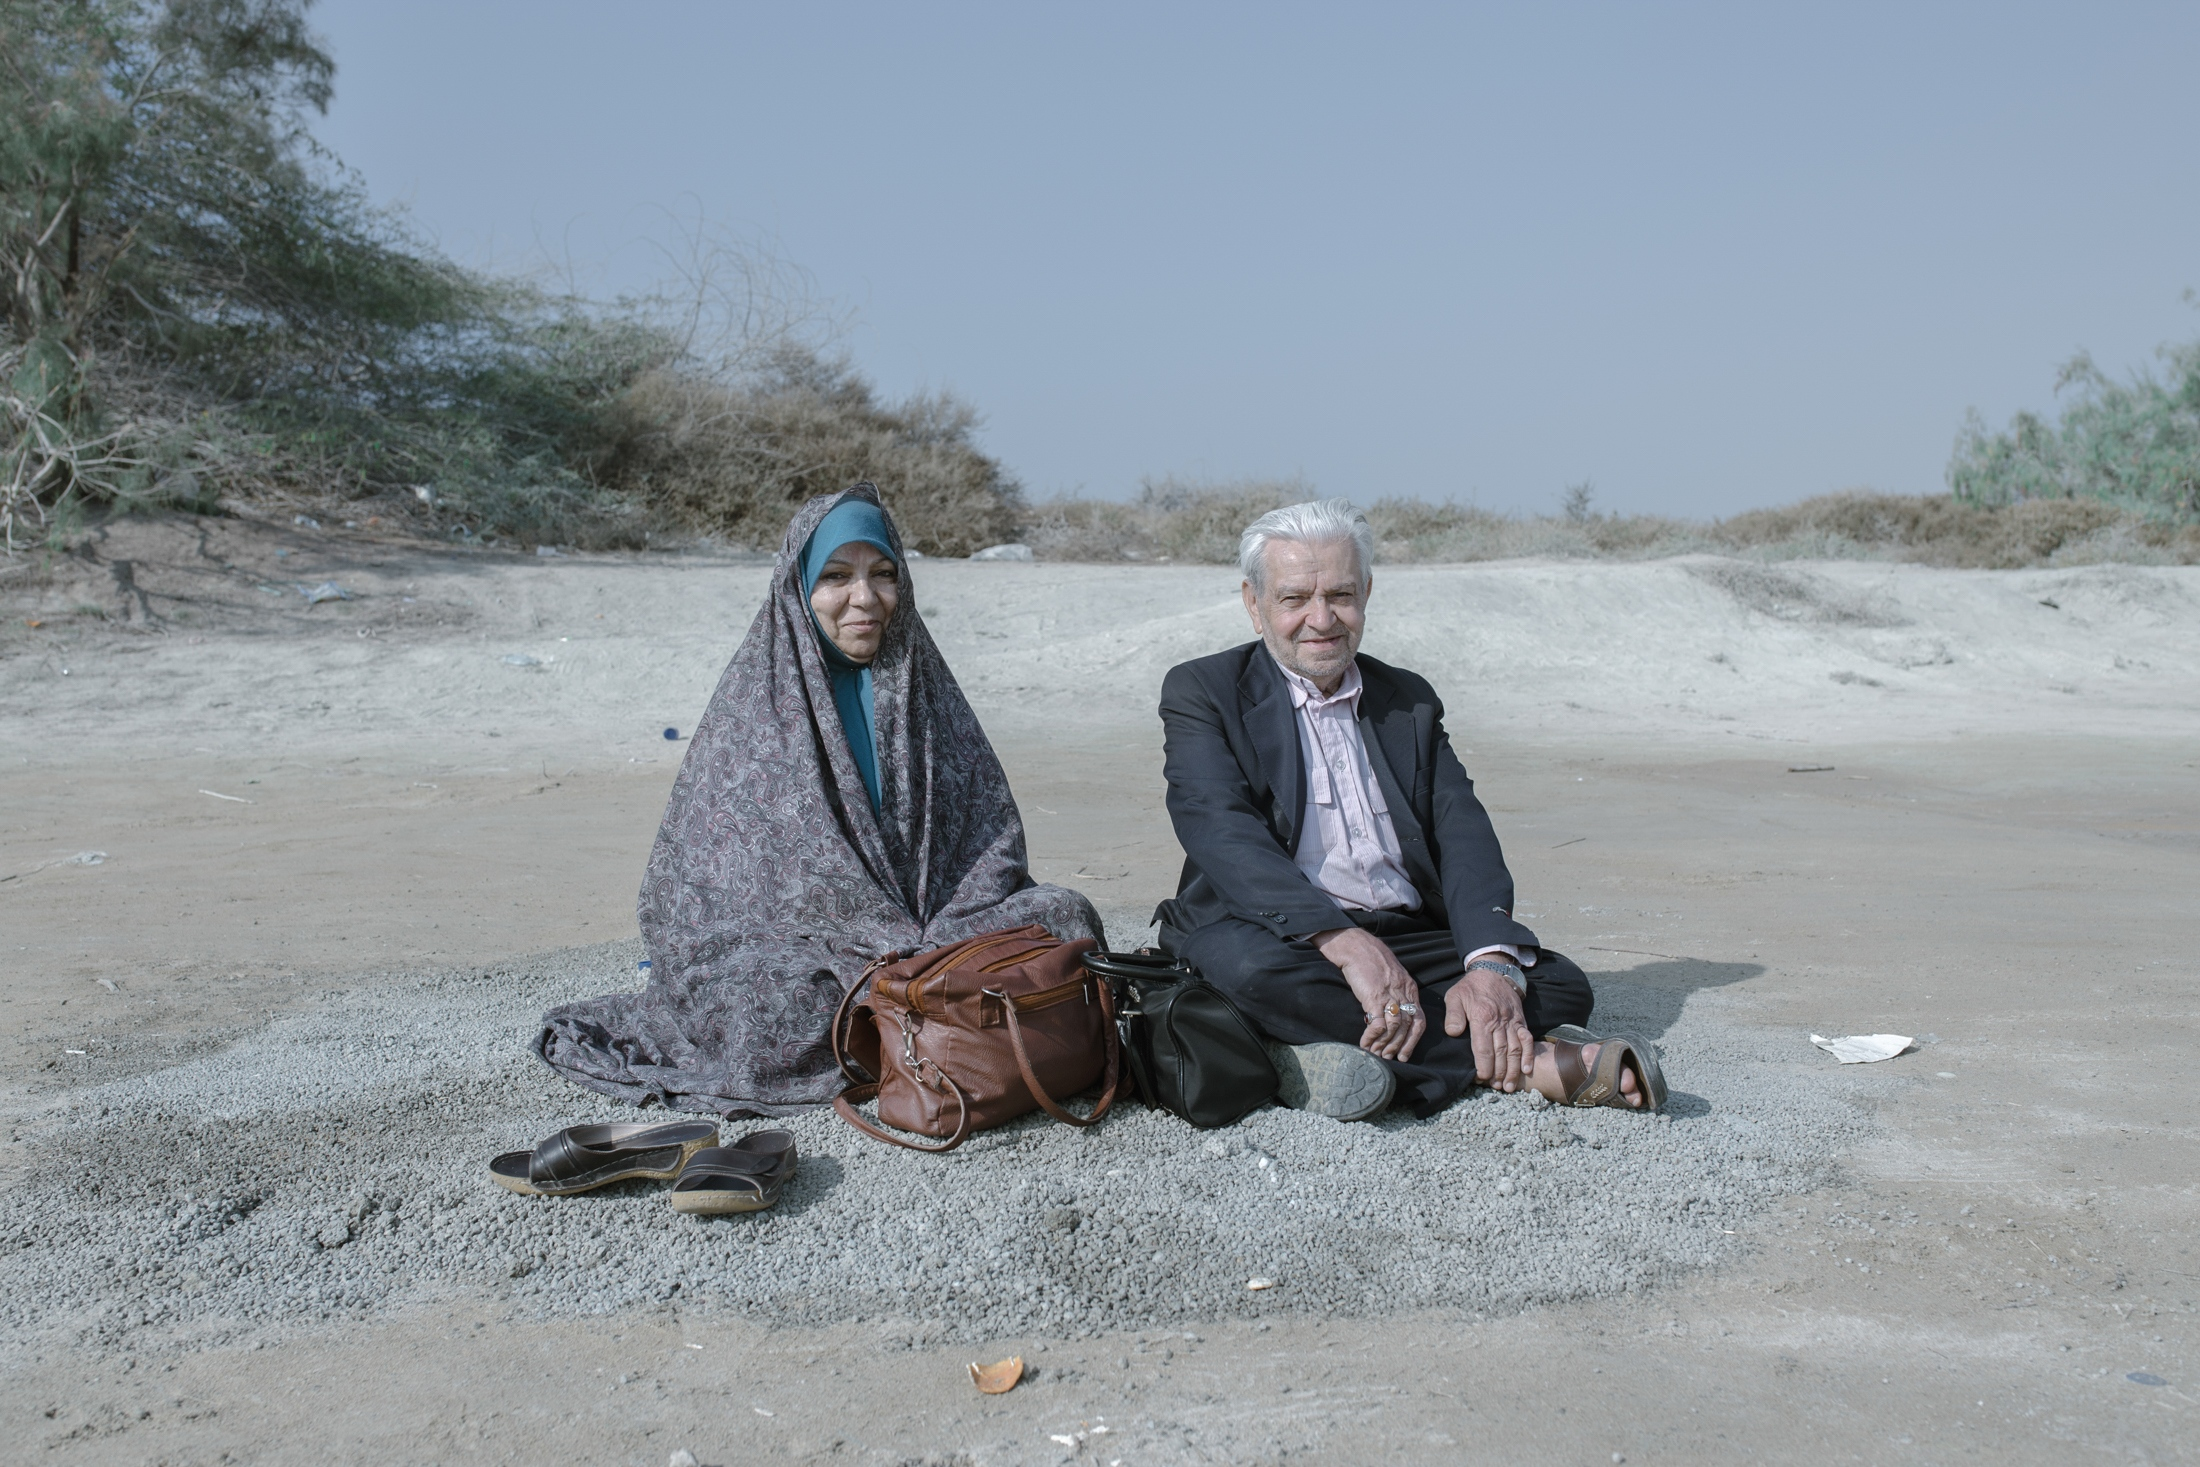 The couple rests on the coast of Pink lake(Lipar lake) in the Chabahar region. It is a free port (Free Trade Zone) on the coast of the Gulf of Oman. Sistan, as a distant and isolated province with the agriculture-dependent economy, dying up of the Hamun wetland have created difficulties for livelihoods Despite the scarcity of water sources, 2017 witnessed an increase in the number of tourists to Sistan and Baluchestan, which promised to bring in some solace for the tottering local economy in which 95% of people living under the poverty line. The main attractions were sectors that did not depend on water. However, it failed to effect a significant change. Balochistan province. Iran.2018